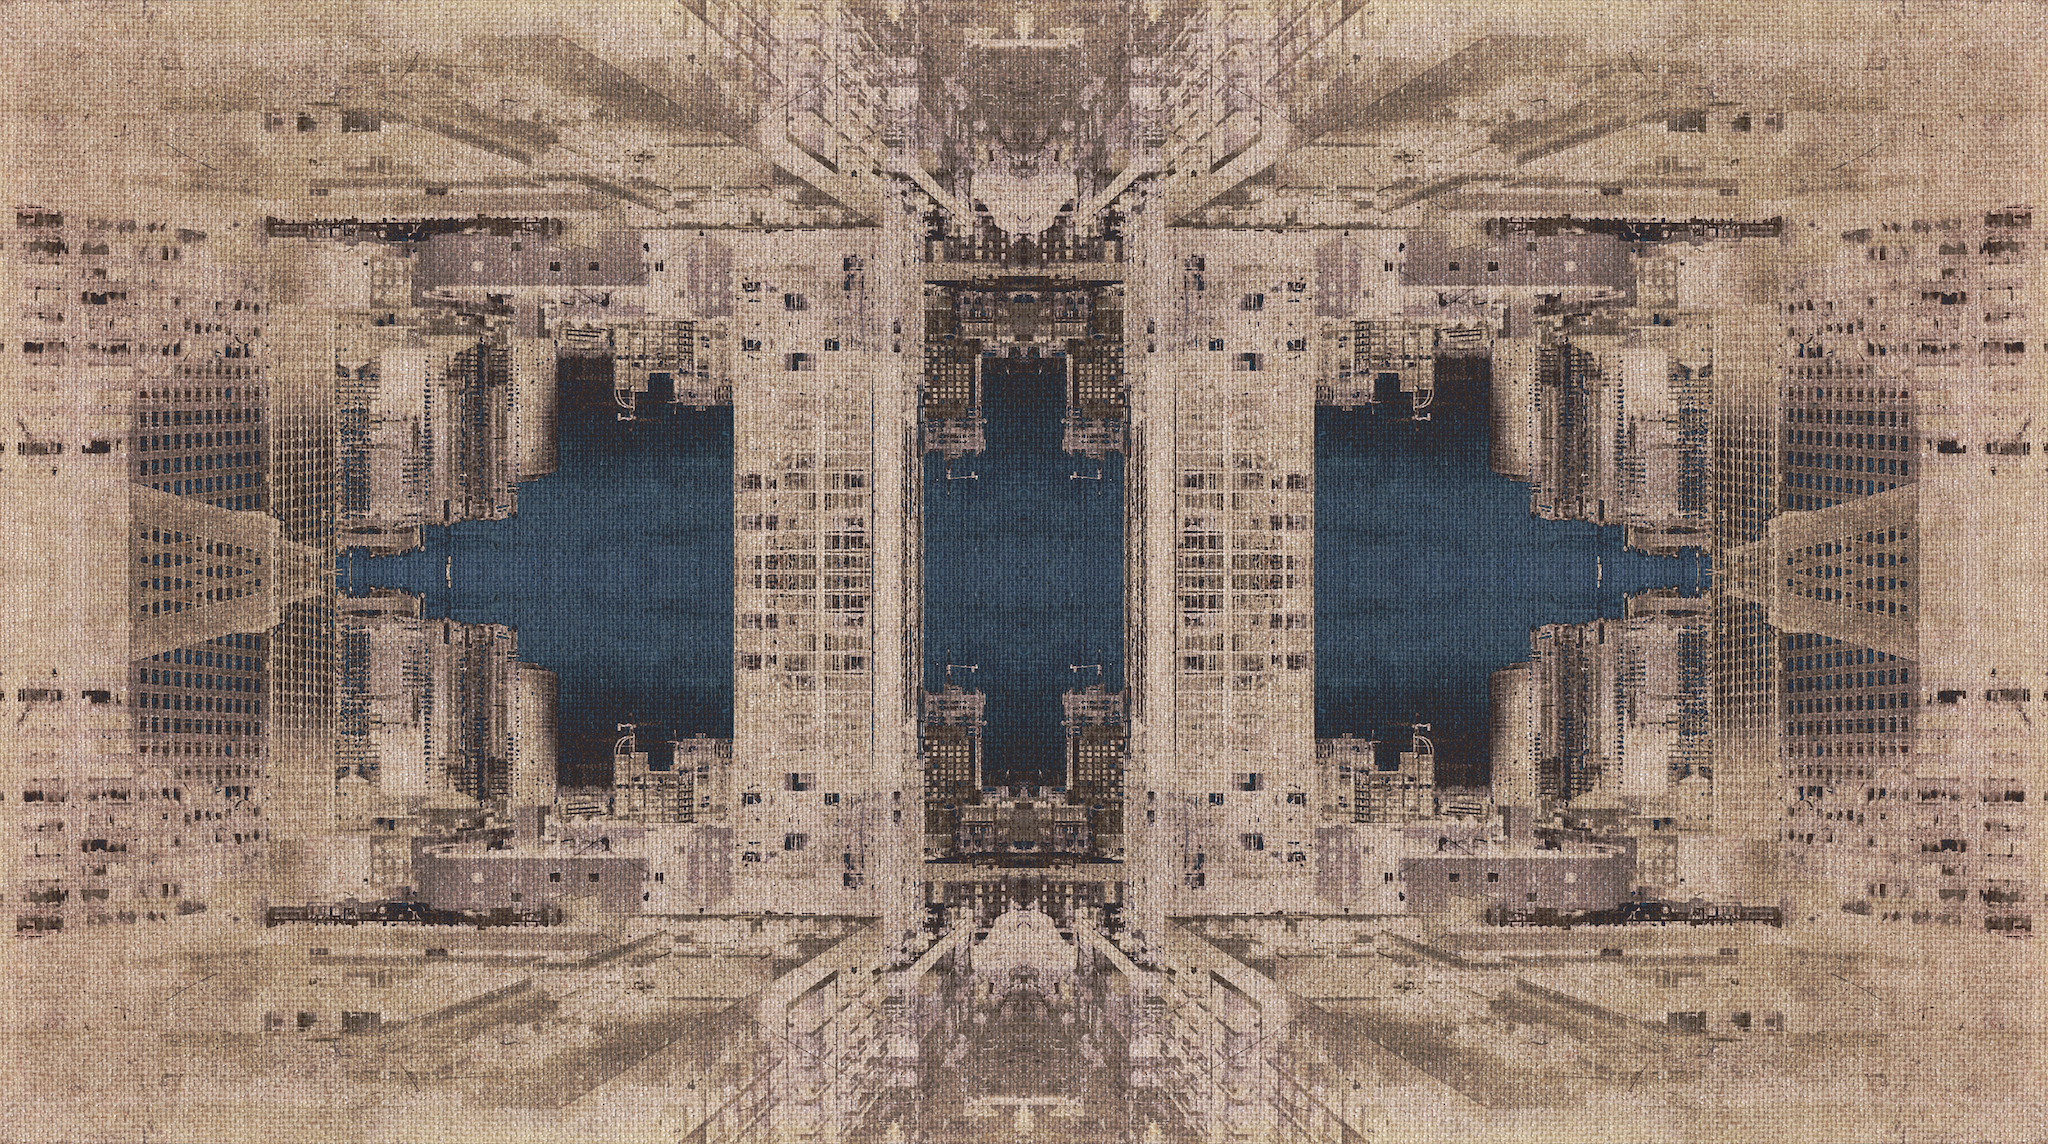 City Tapestry No. 1, 2017 (Available in Signed Limited Editions Only)